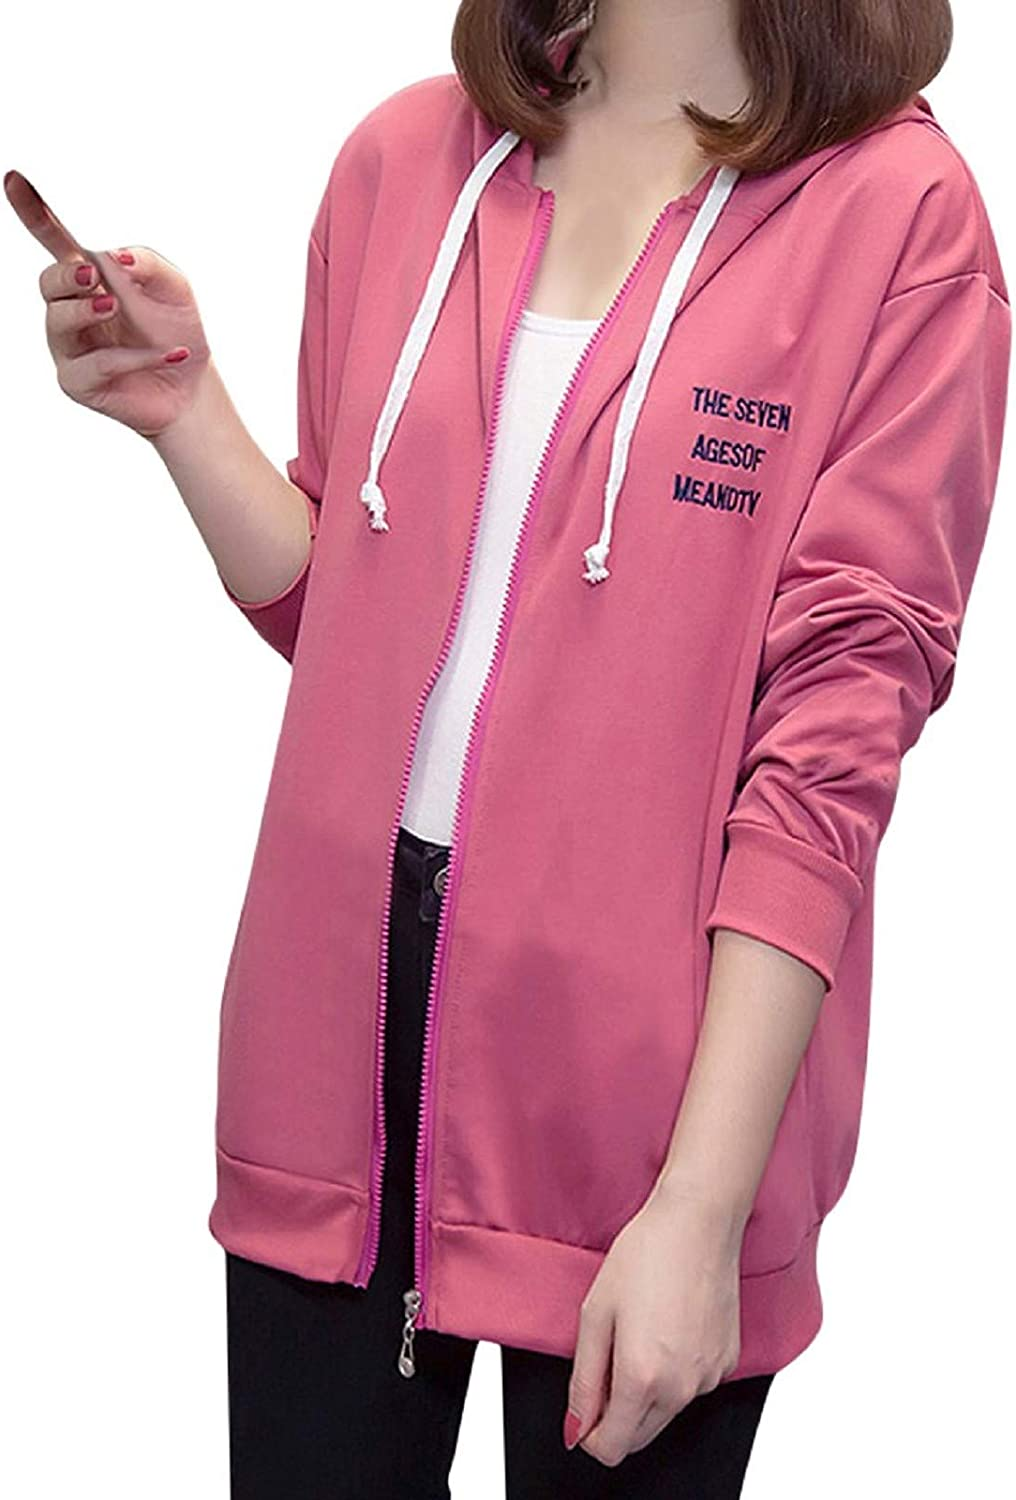 Amaeen Coats for Womens Hooded Sports Cardigan Jacket Solid Color Coat Loose Long Sleeve Soft Casual Winter Overcoat